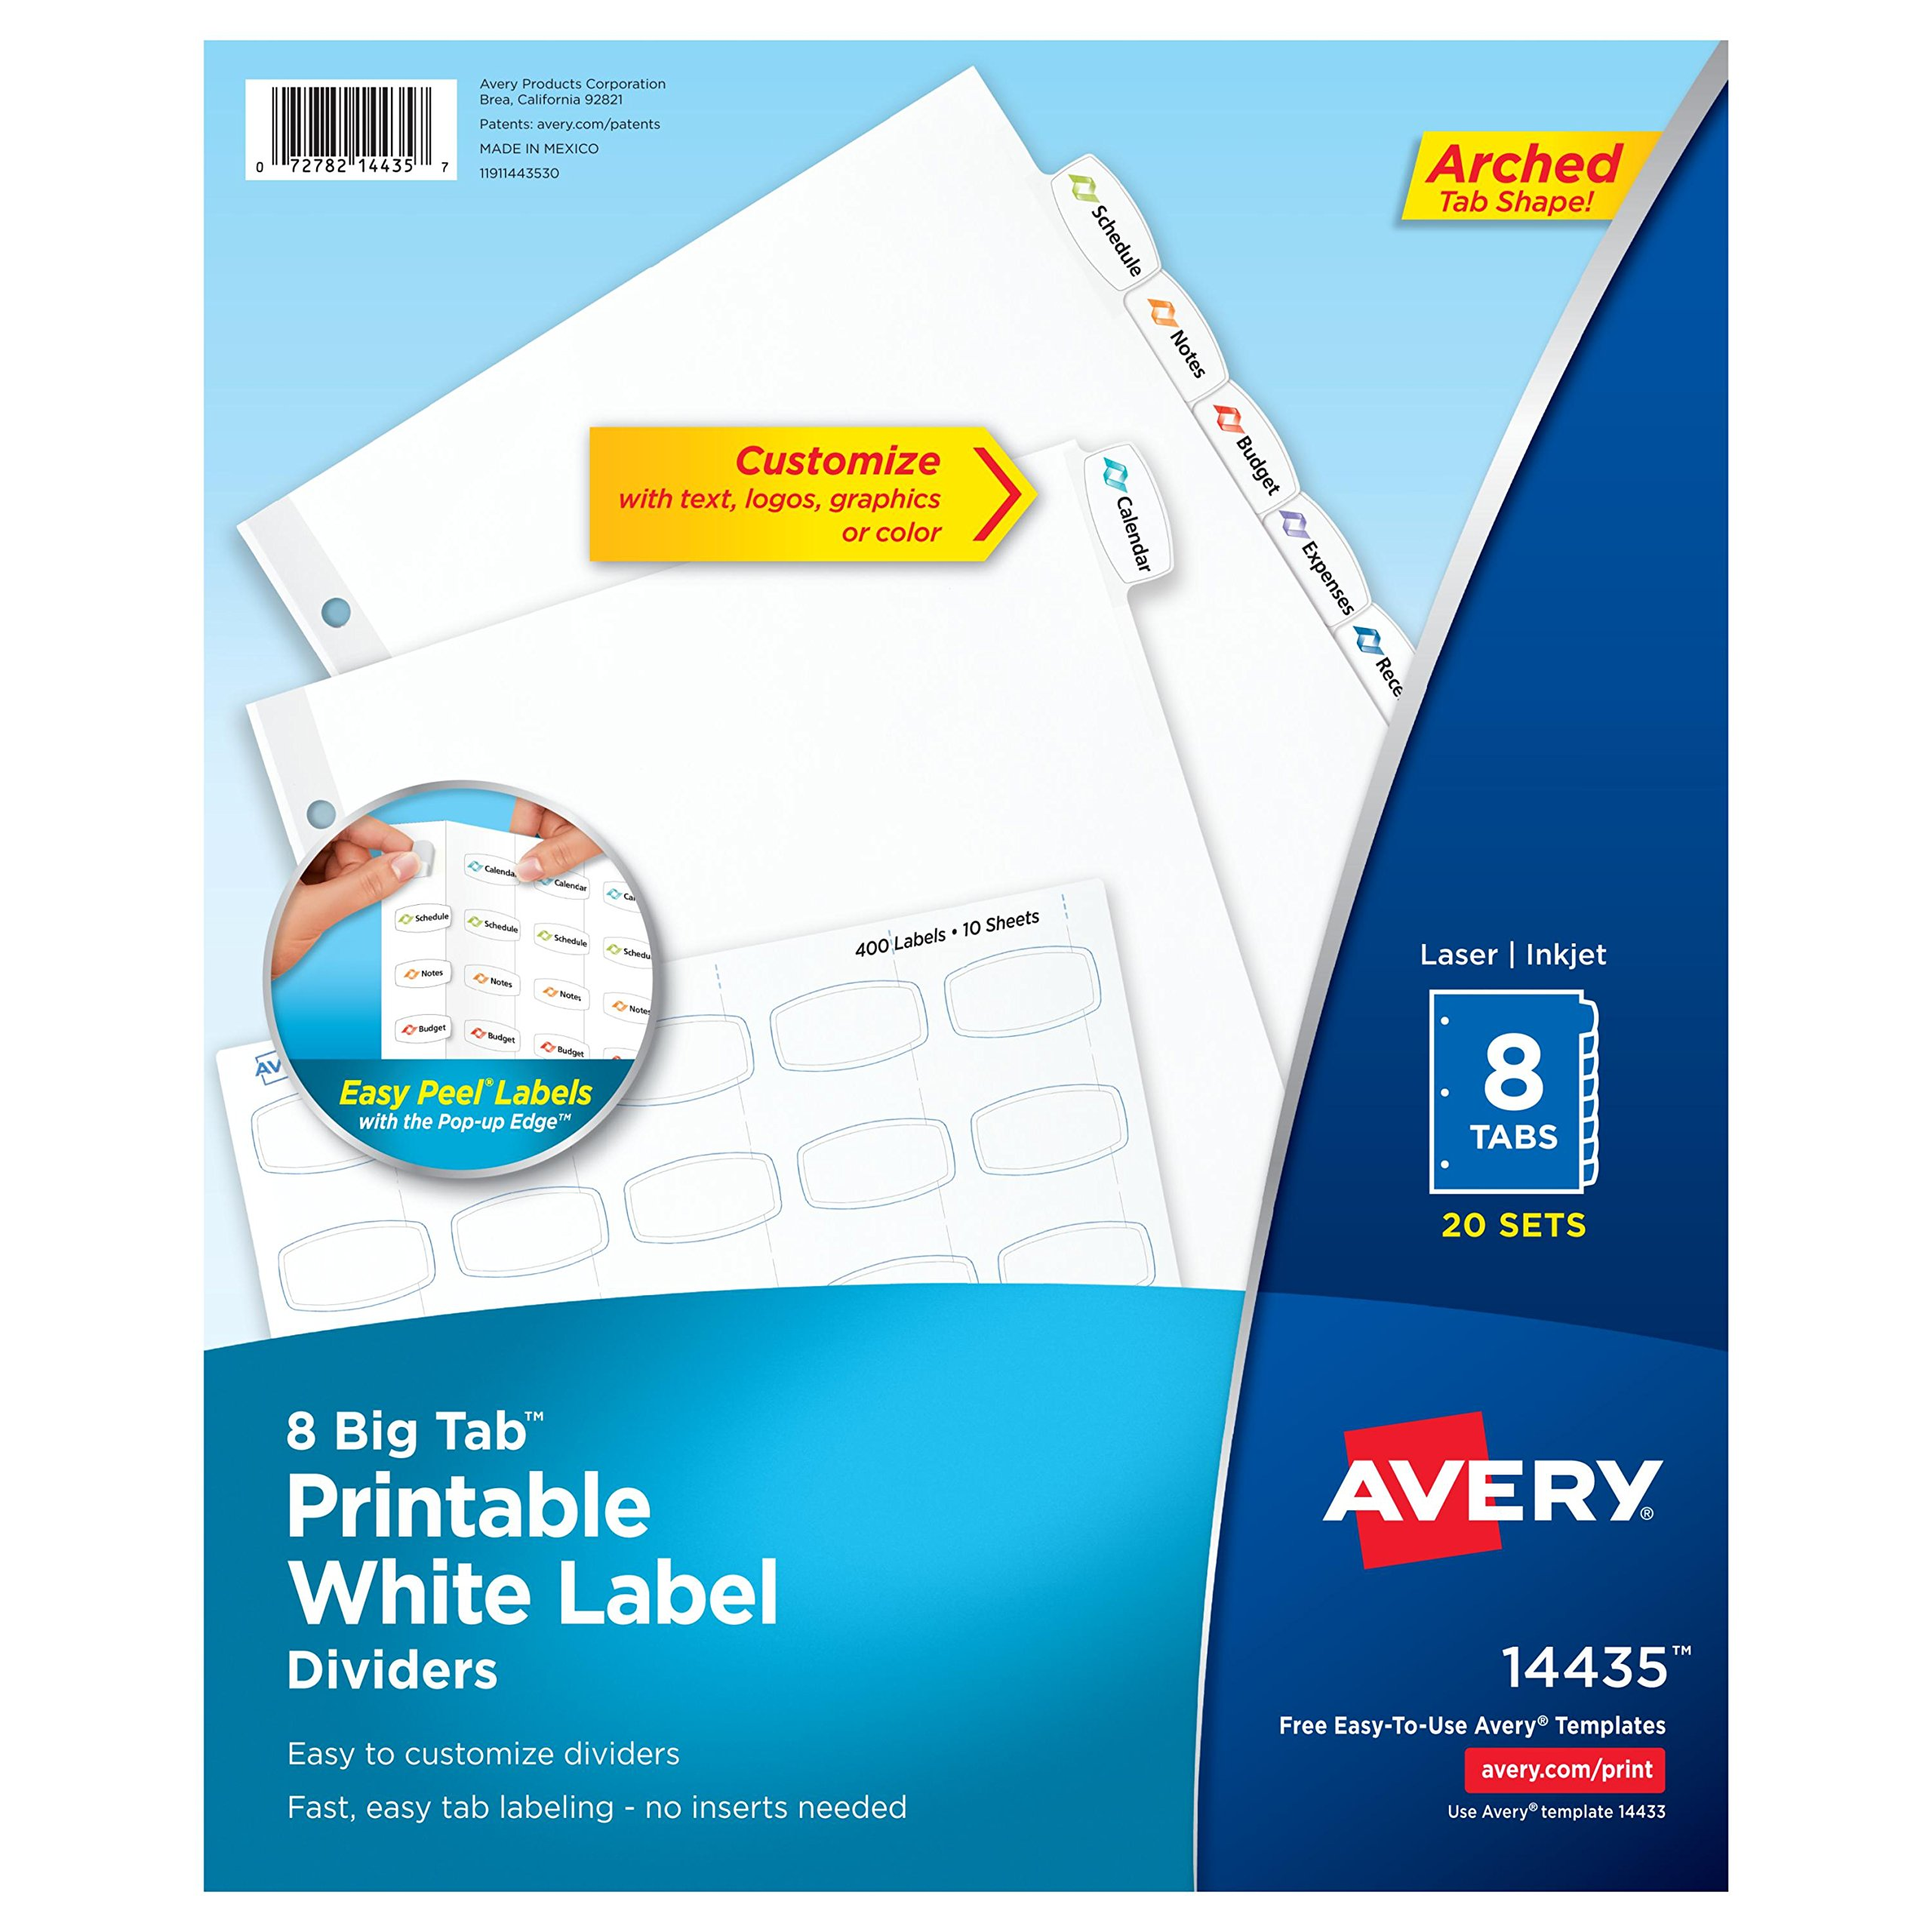 Avery Big Tab Printable White Label Dividers with Easy Peel, 8 Tabs, 20 Sets (14435)